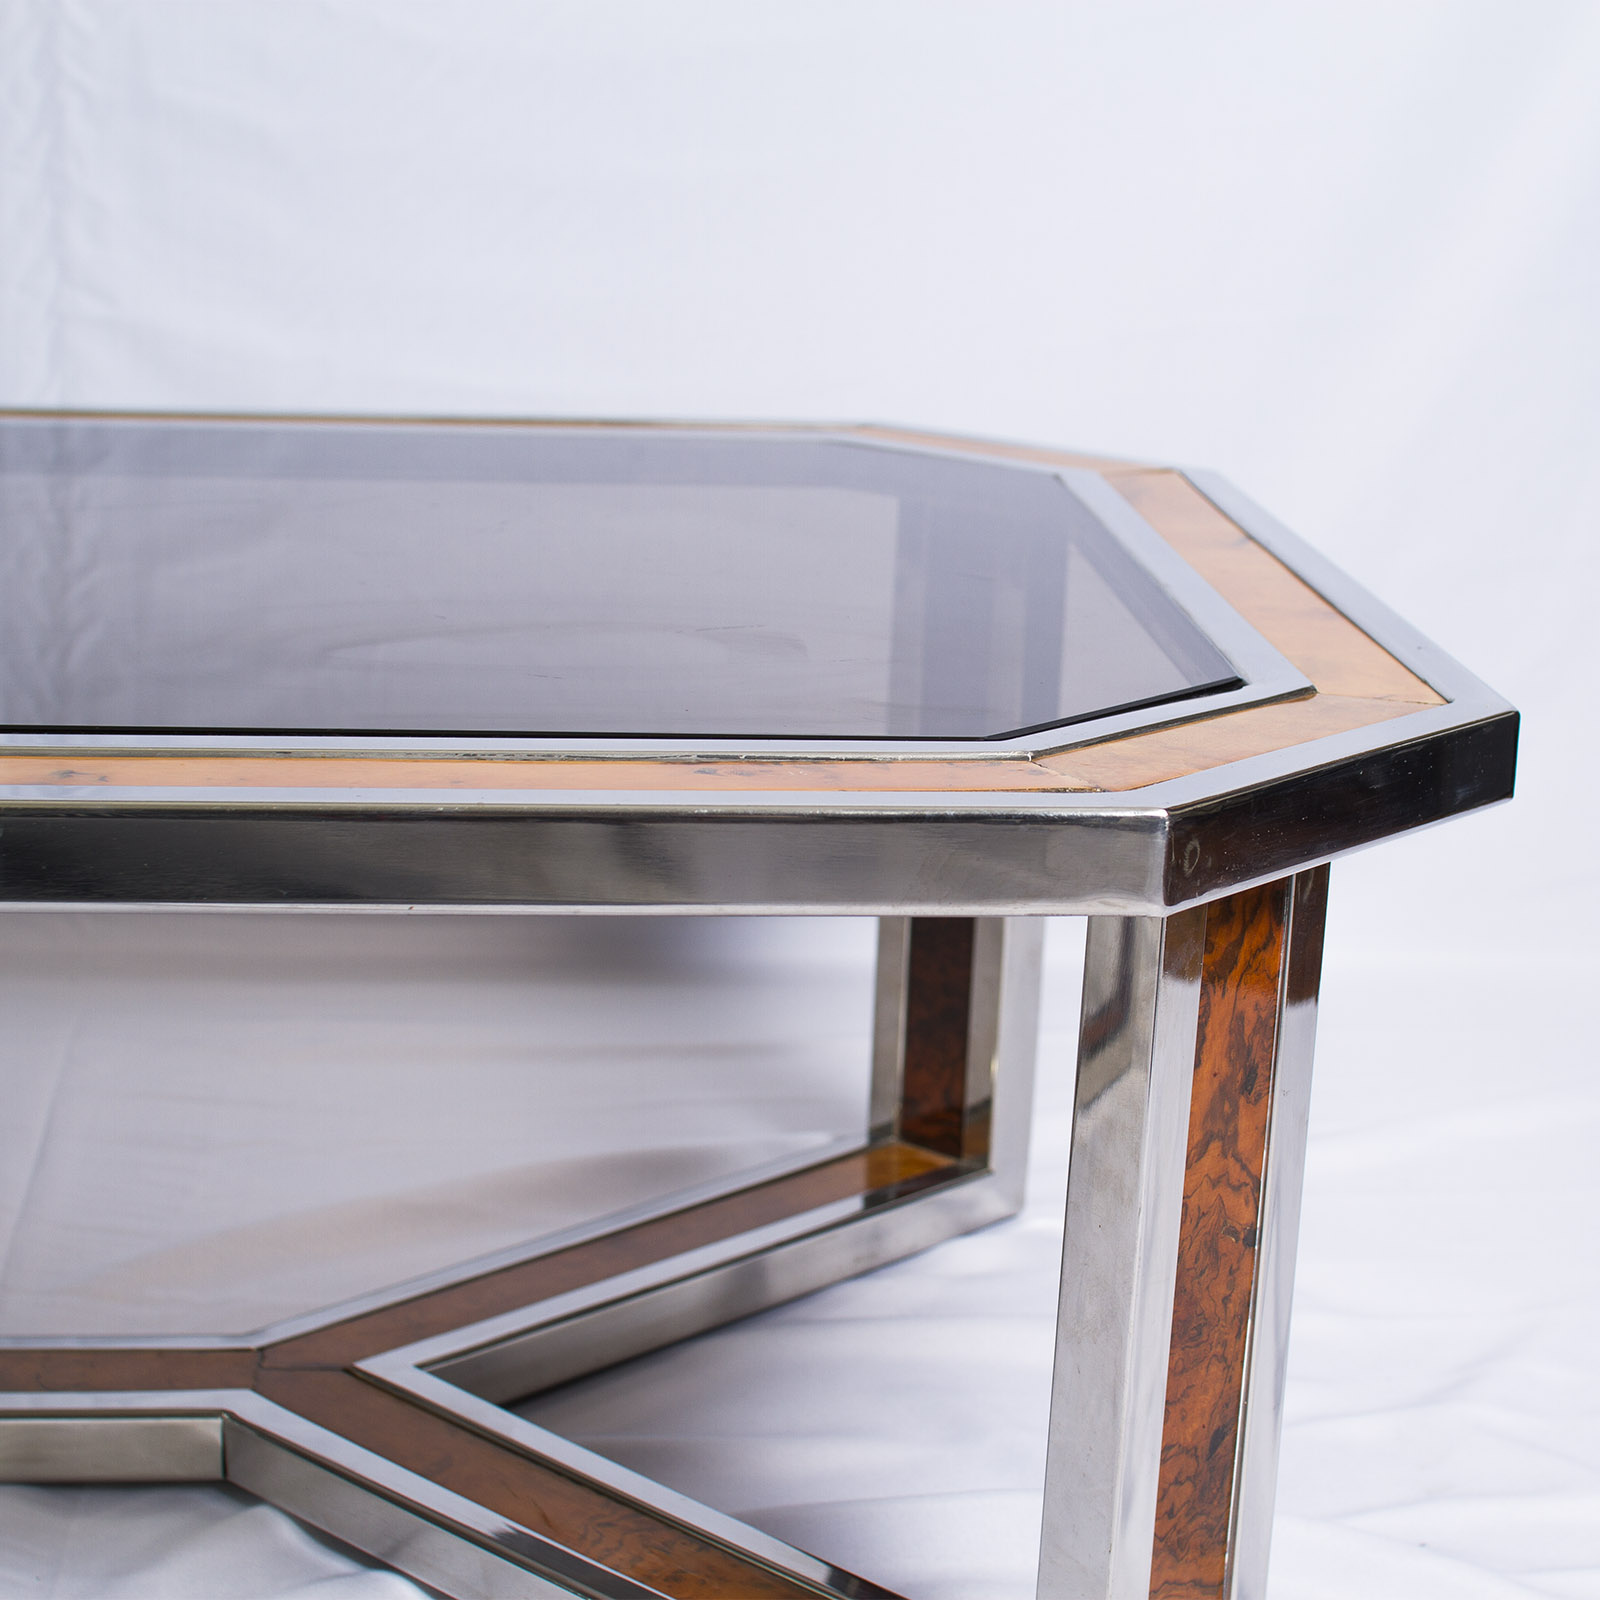 Coffee Table By Romeo Rega  Joevin Ortjens Galerie. Drawer Trays. Modular Table. Vpn Help Desk. Formica Dining Table. Farmhouse Dining Table Set. Bakers Rack With Drawers. White Desk Australia. Wrought Iron Patio Table And Chairs